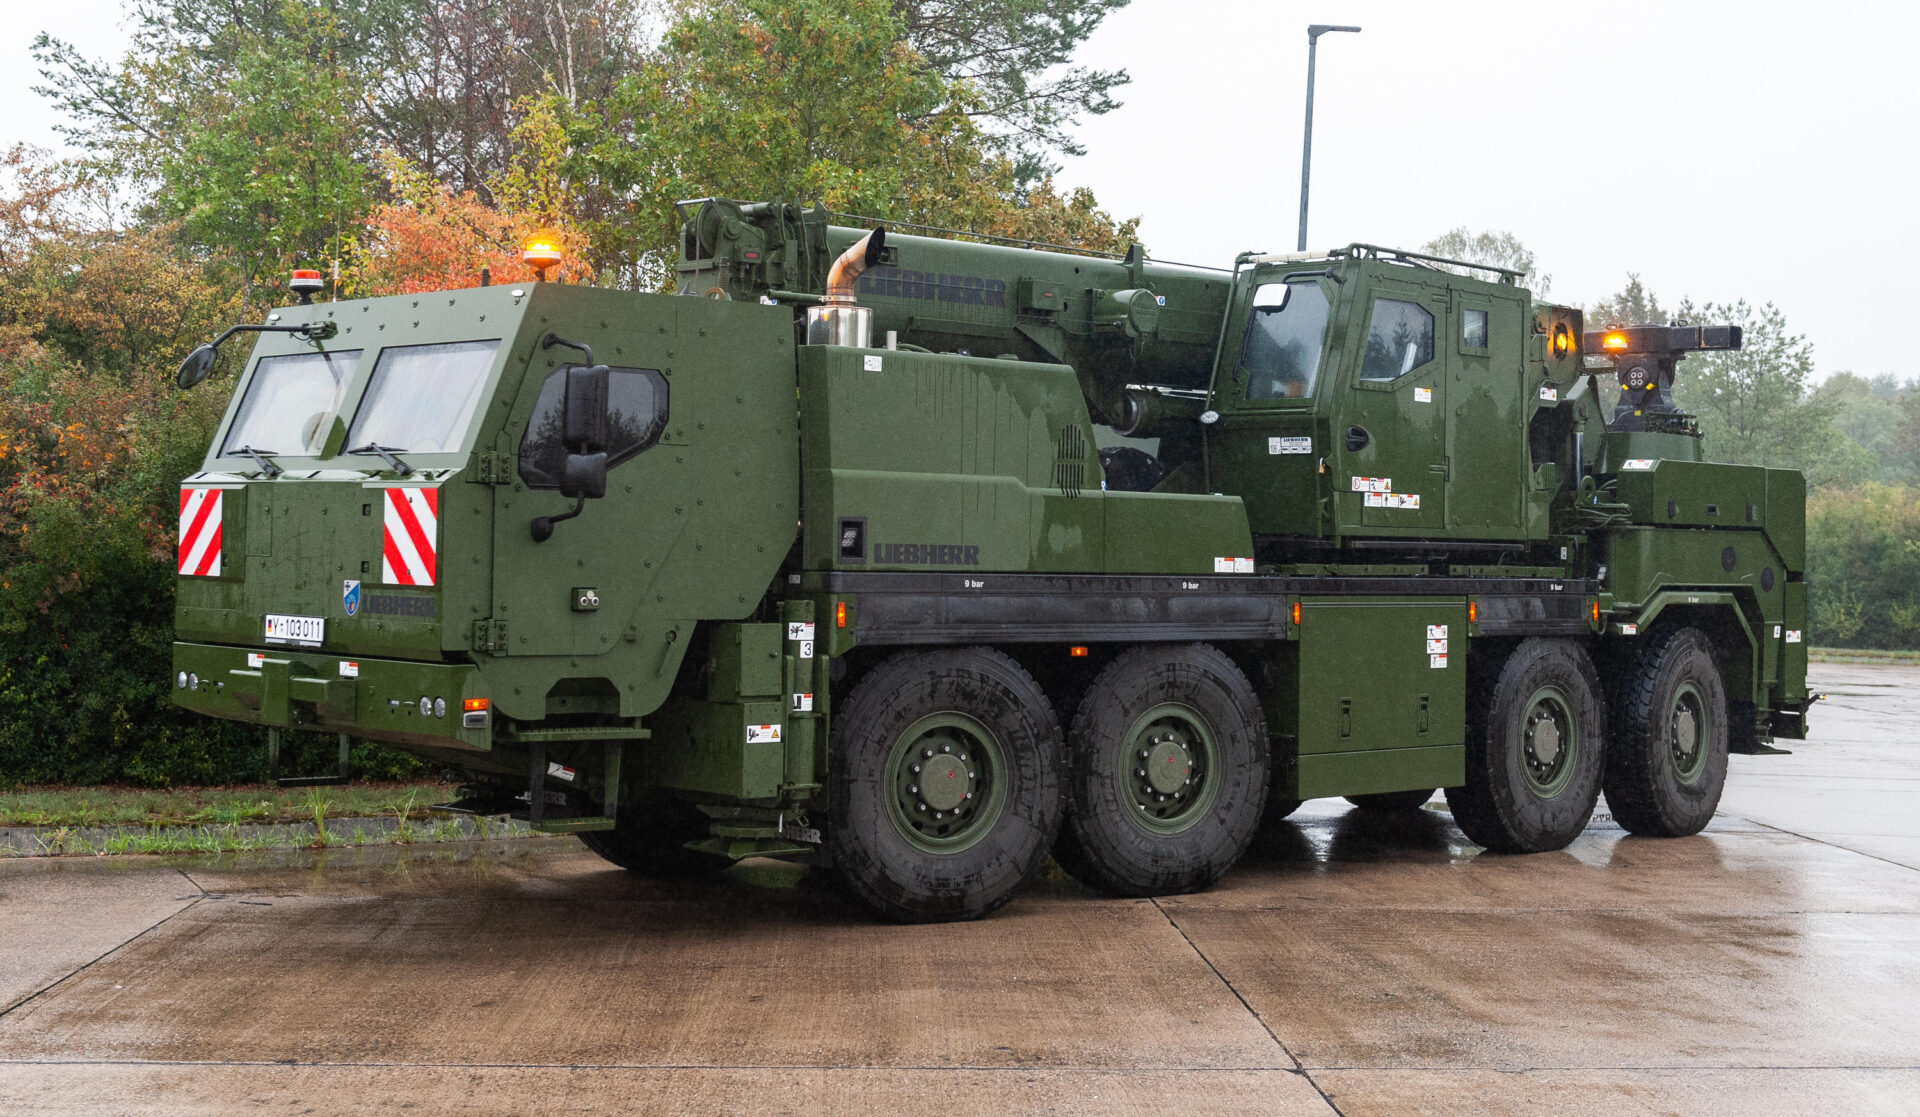 """Trauen, Germany. 25th Sep, 2019. A protected recovery crane vehicle of the type """"G-BKF"""" stands on one place during the information training exercise """"Land Operations 2019"""". Credit: Philipp Schulze/dpa/Alamy Live News"""